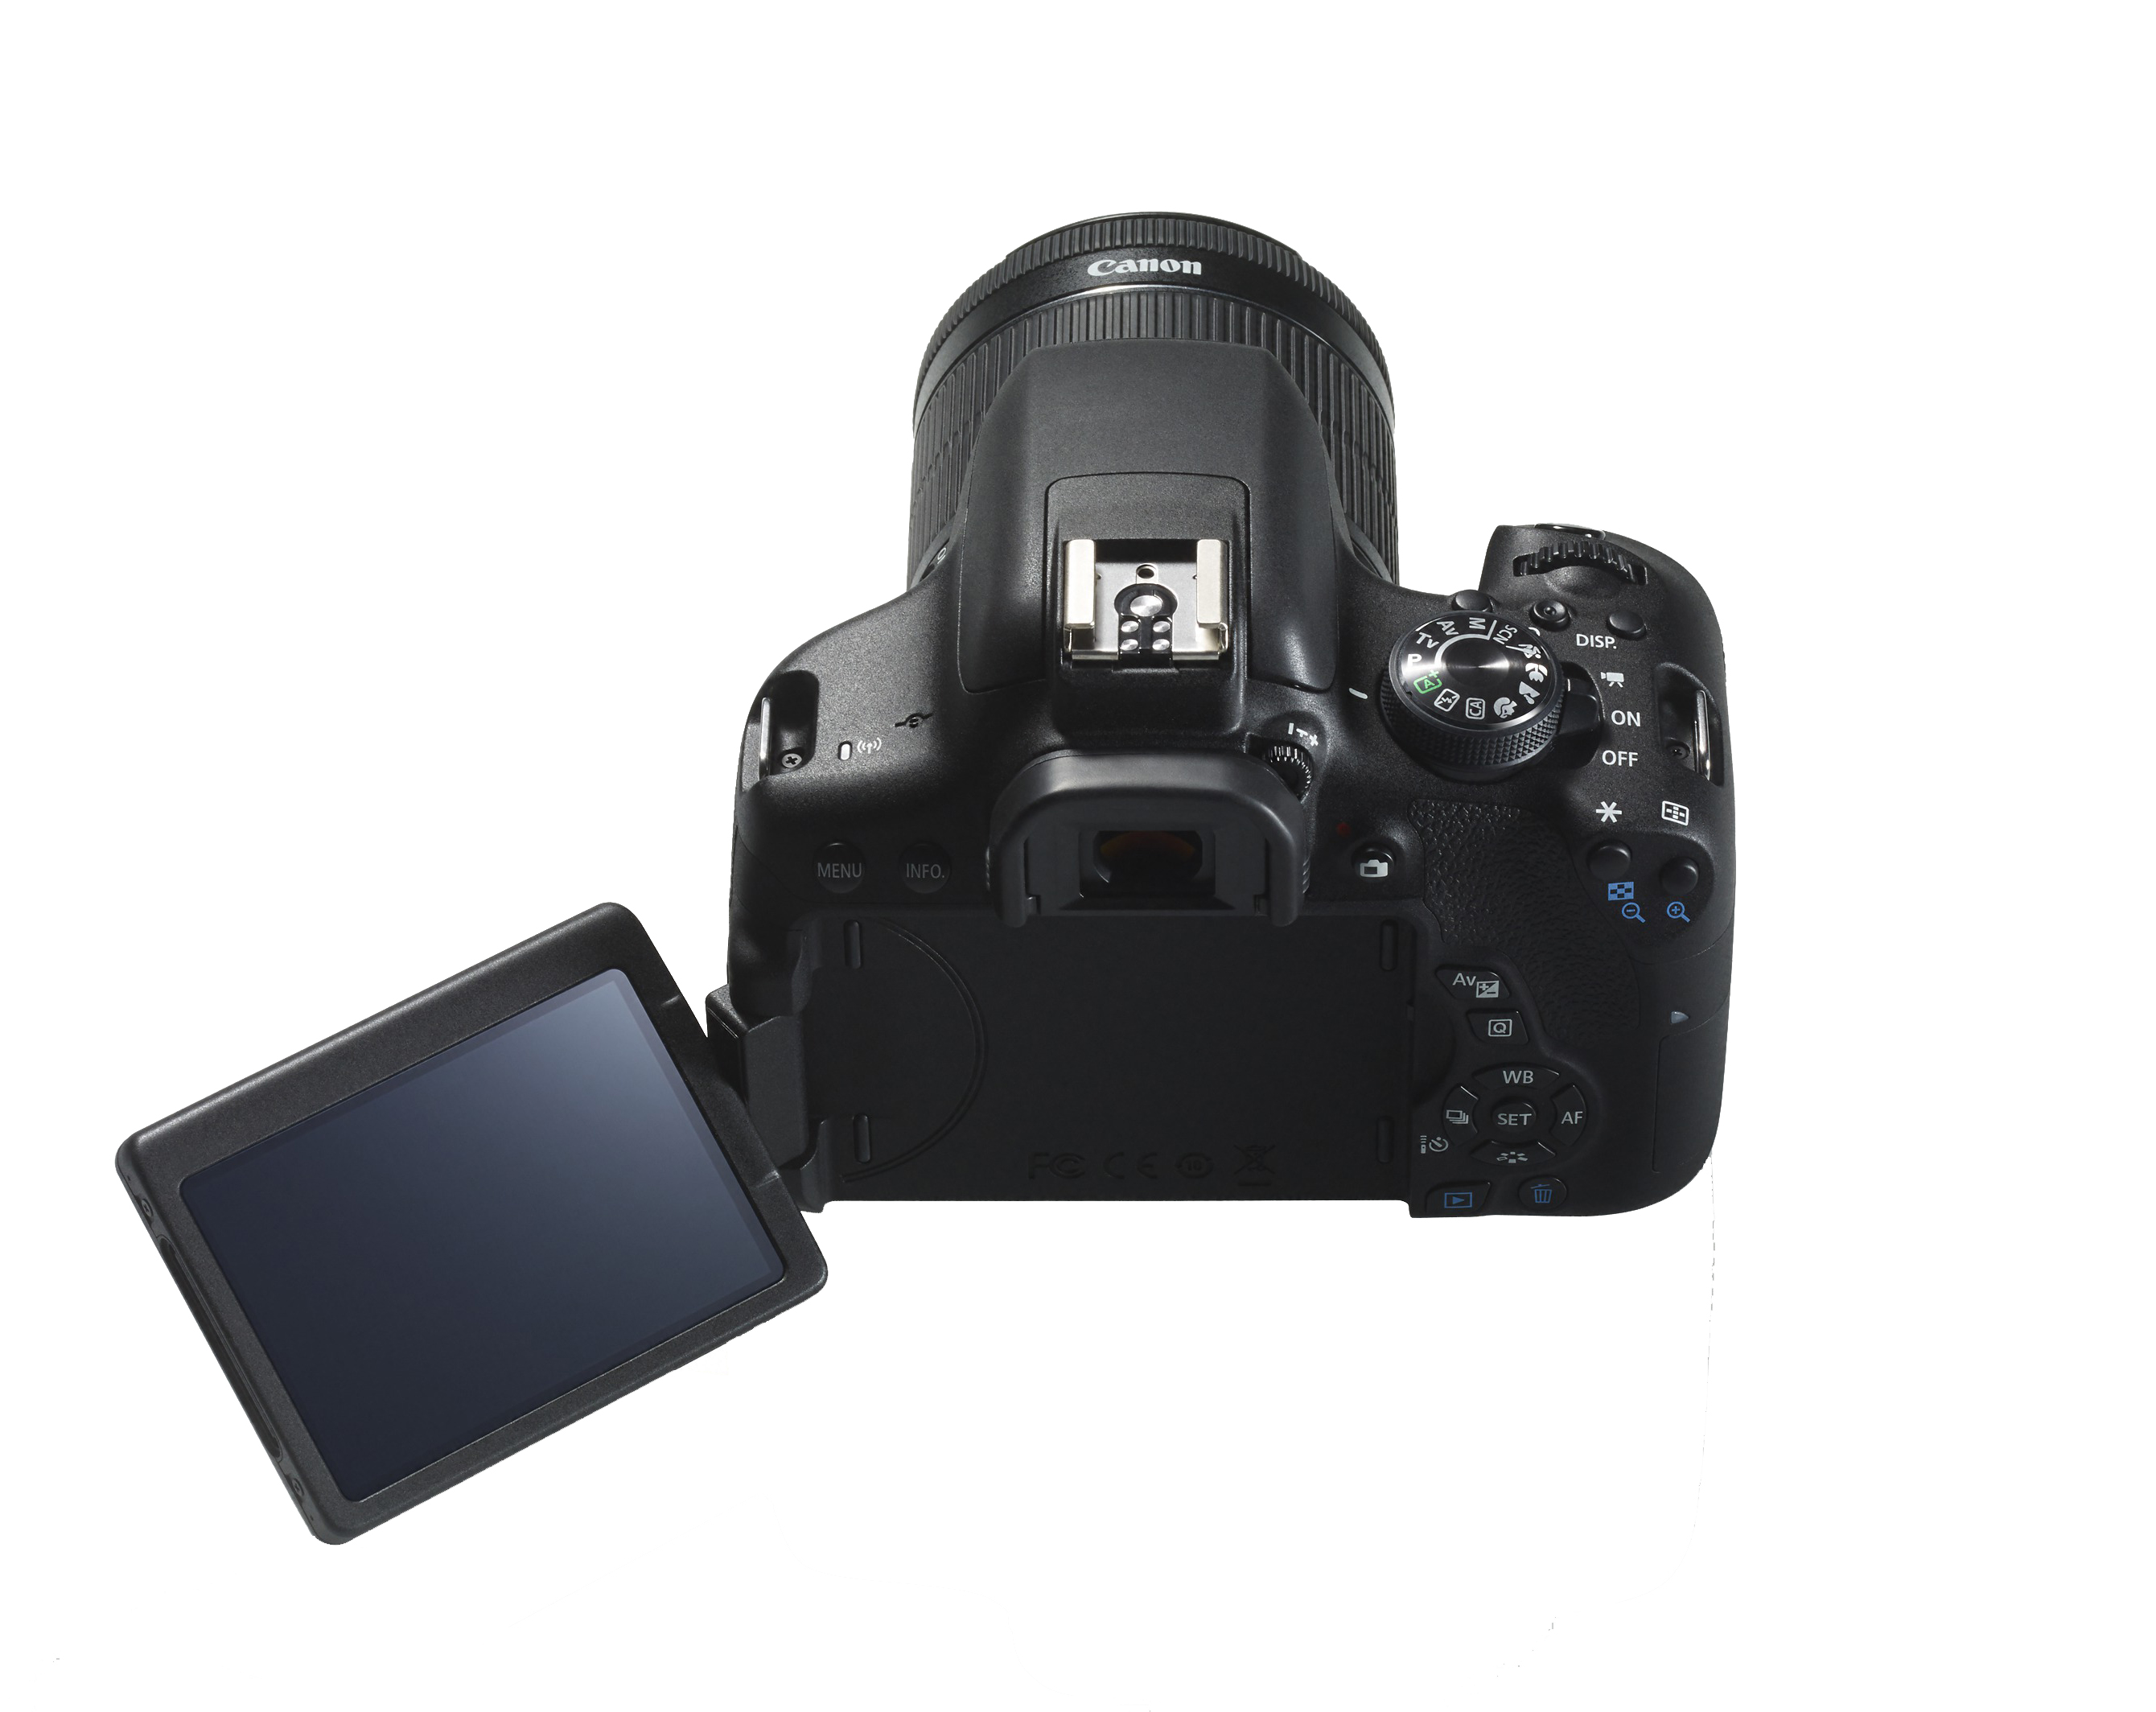 Canon-EOS-750D-Gear-NewRelease-Announced-On-Orms-Connect-Photographic-Blog